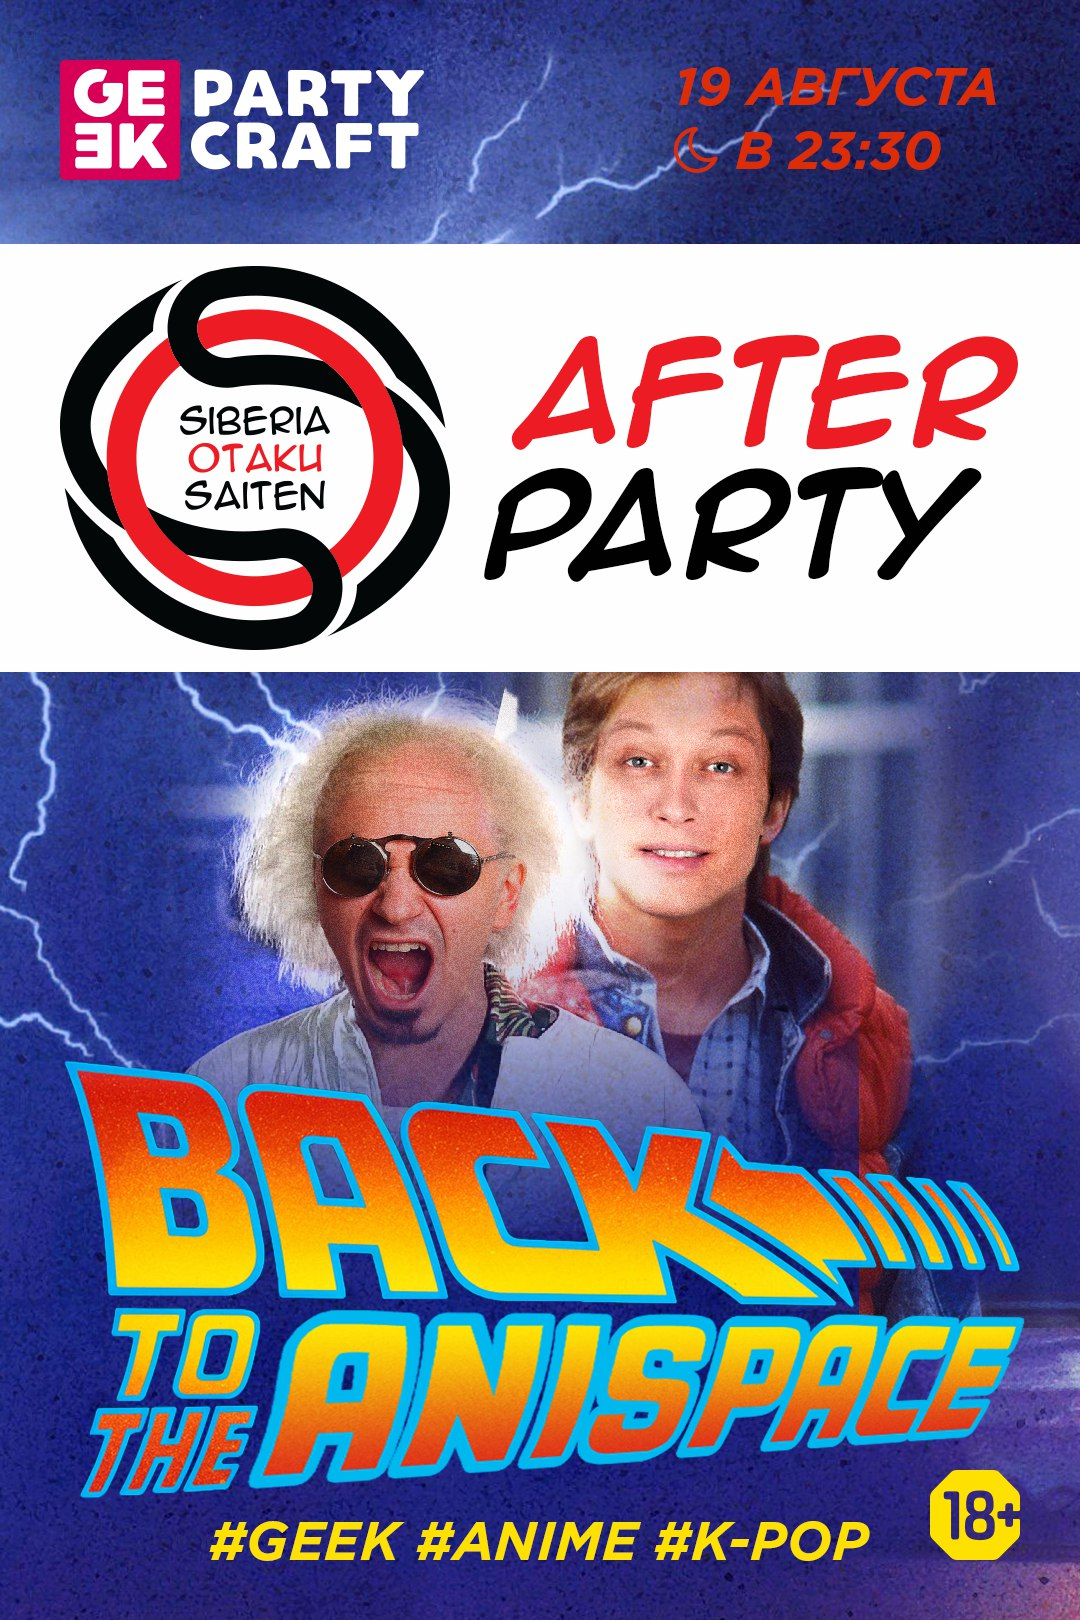 S.O.S. After Party 2017 - Back To The Anispace!